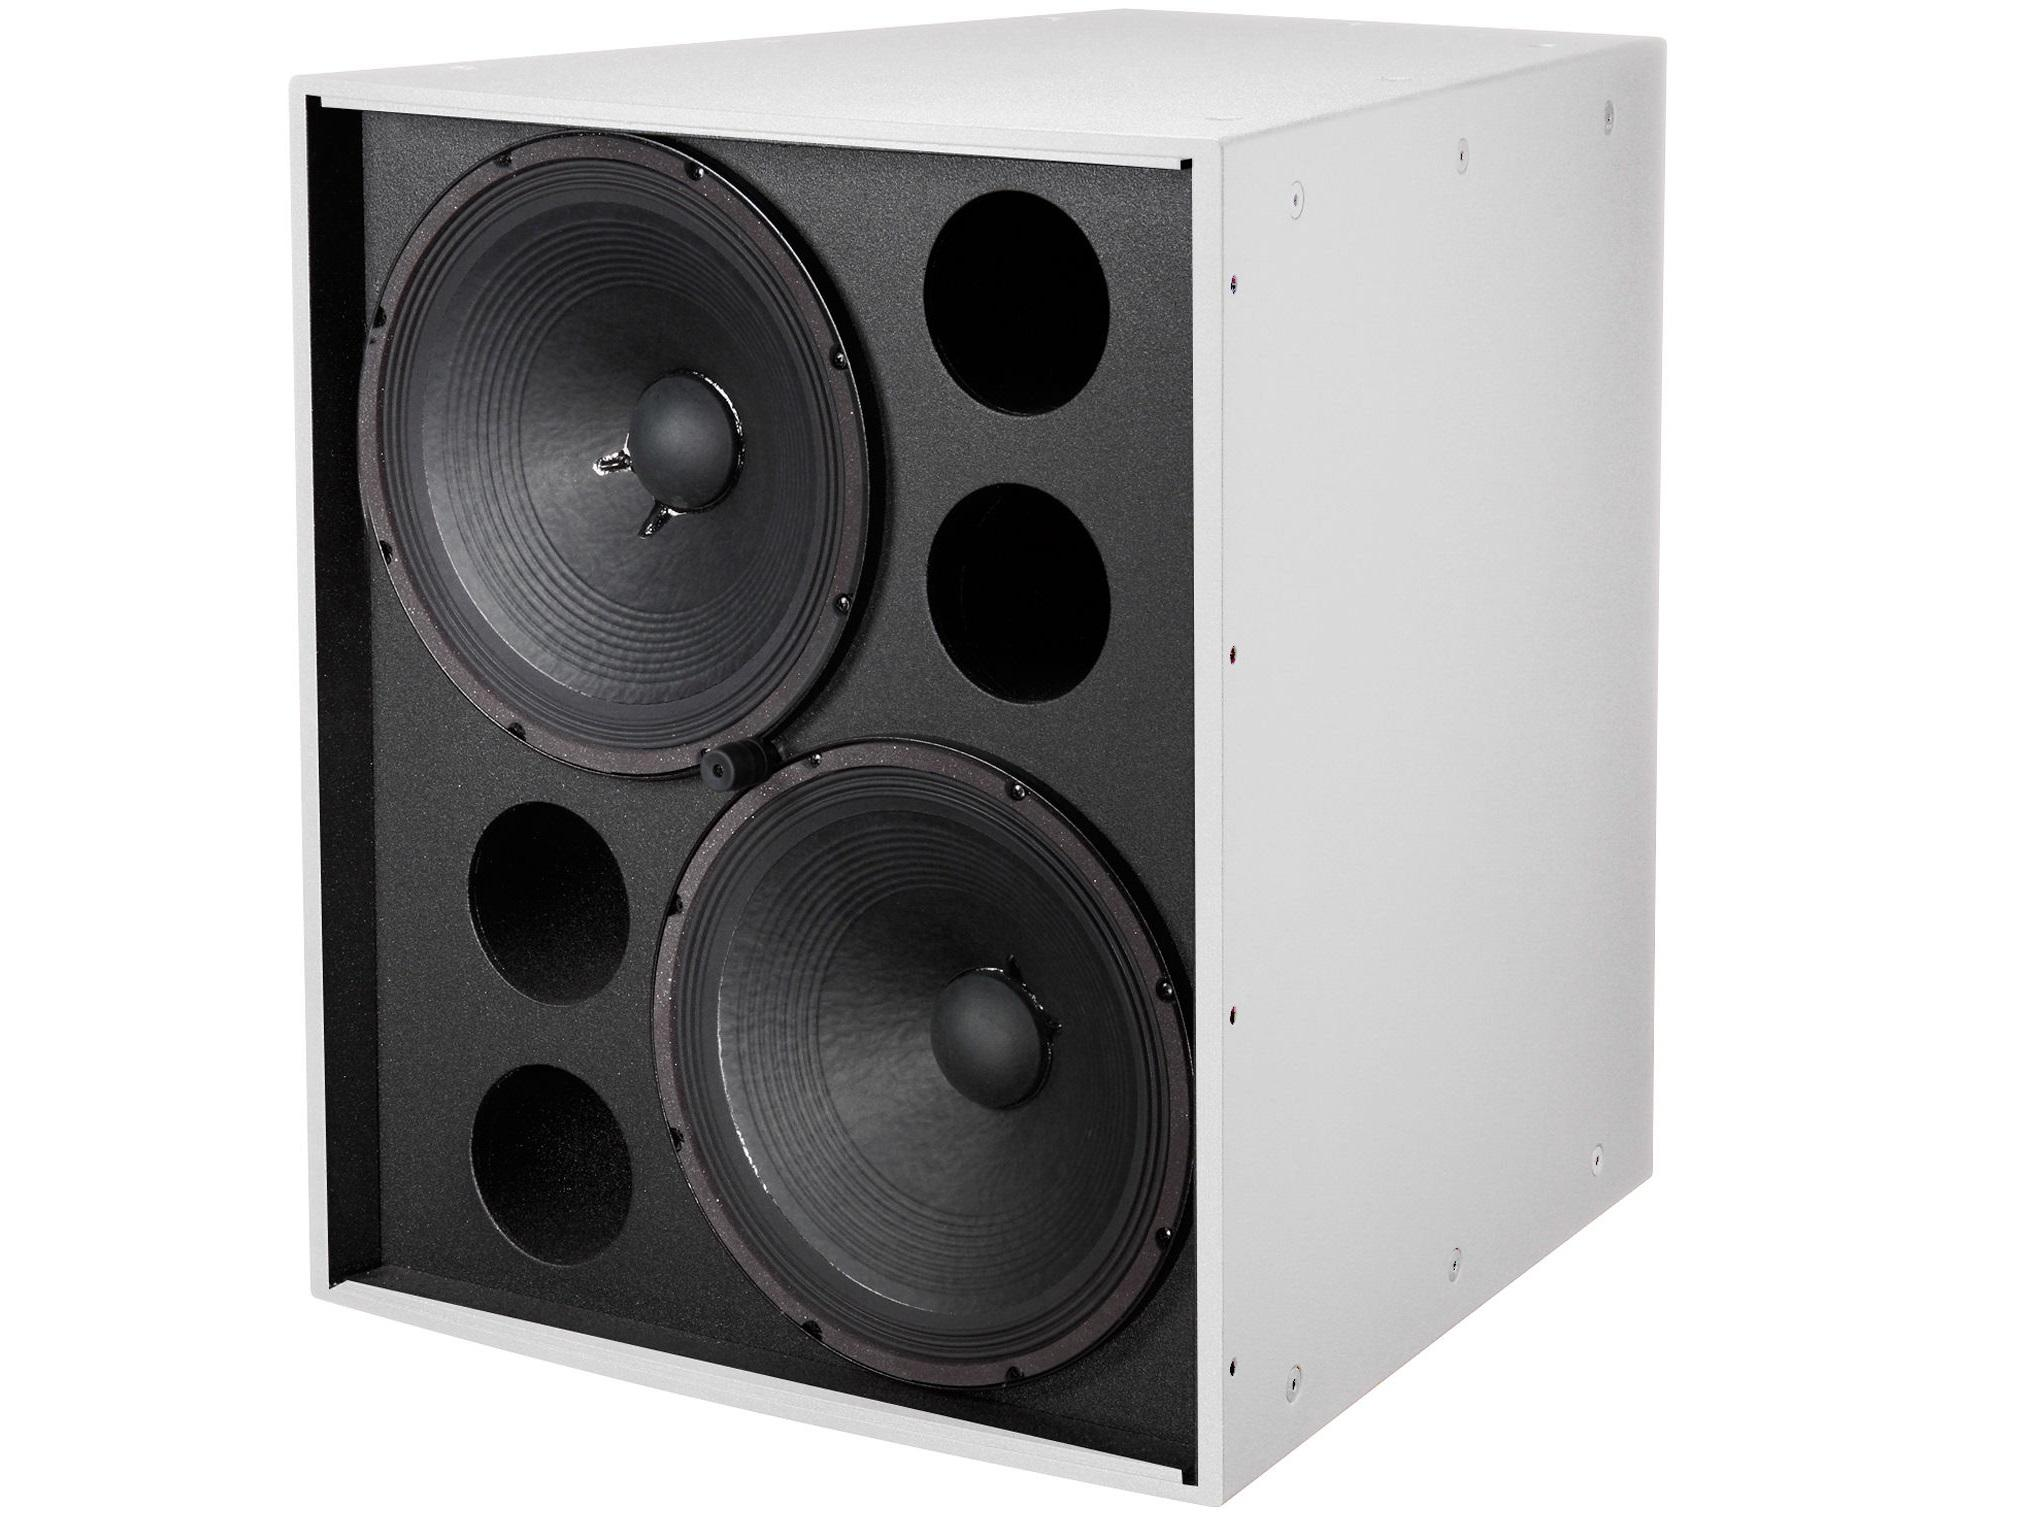 Electro-Voice EVF2151DPIW Dual 15 inch Front-Loaded Subwoofer/Evcoat/Pi-Weatherized/White